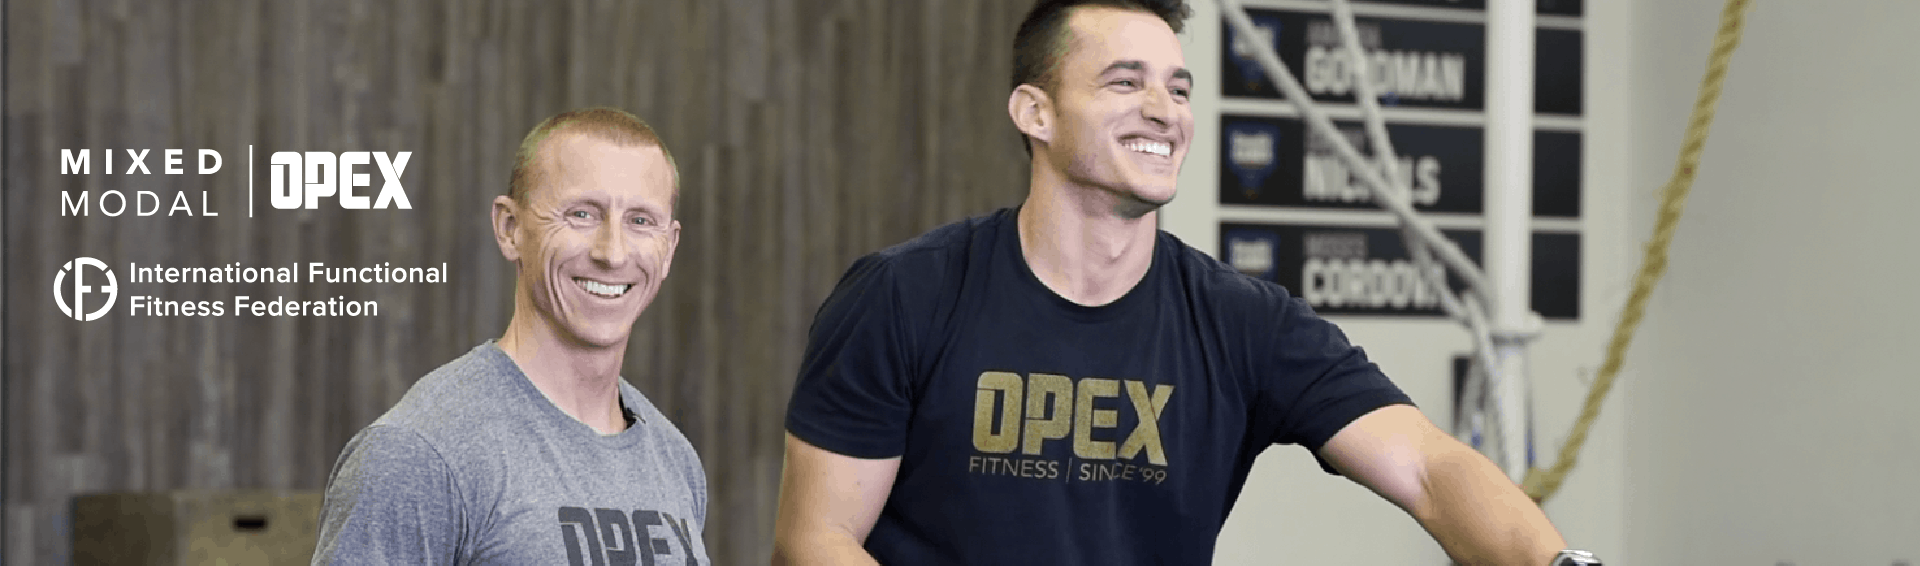 Anti-Doping Services to Feature Once Again at USAFF Nationals Thanks to Sponsorship by OPEX Fitness